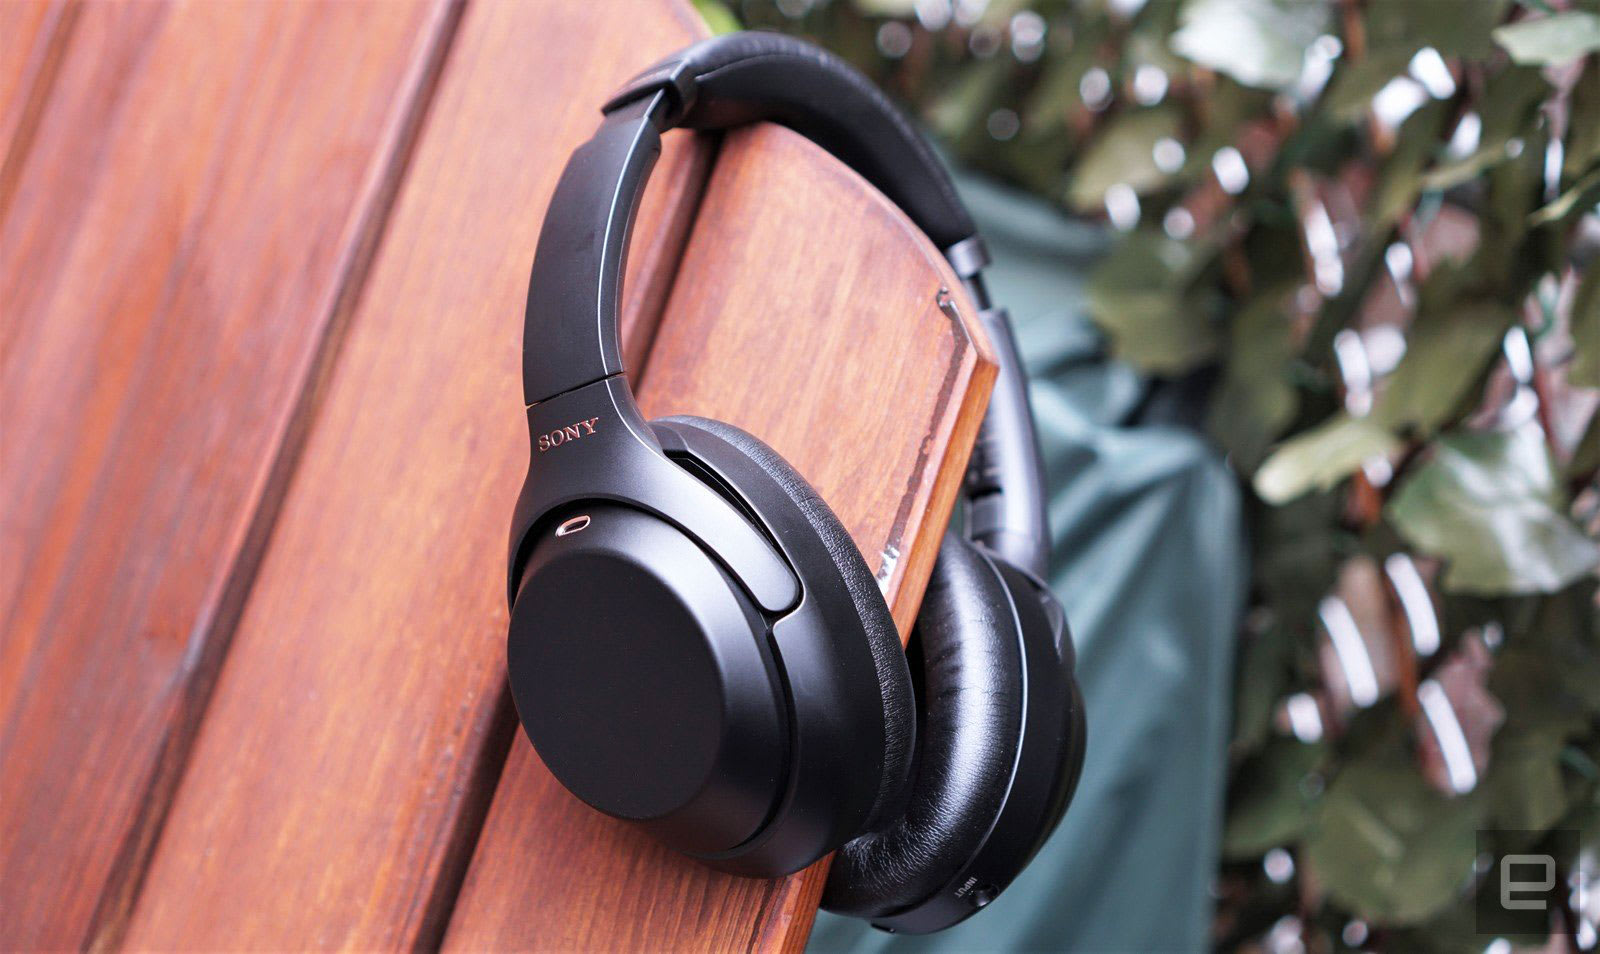 Sony WH-1000XM3 headphones review: Goodbye, Bose | Engadget